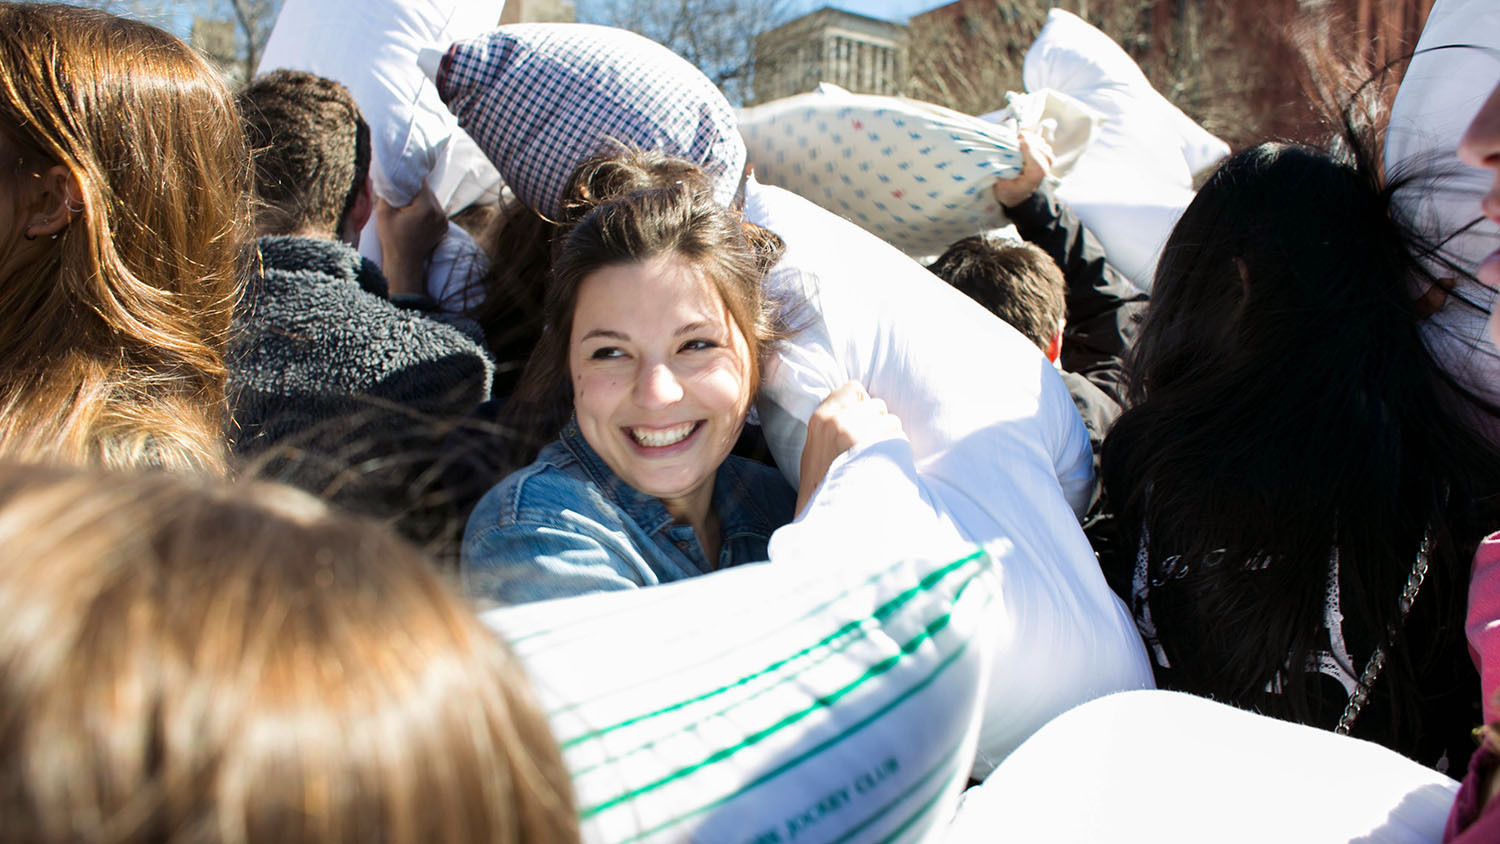 A giant pillow fight will take over Pershing Square this weekend